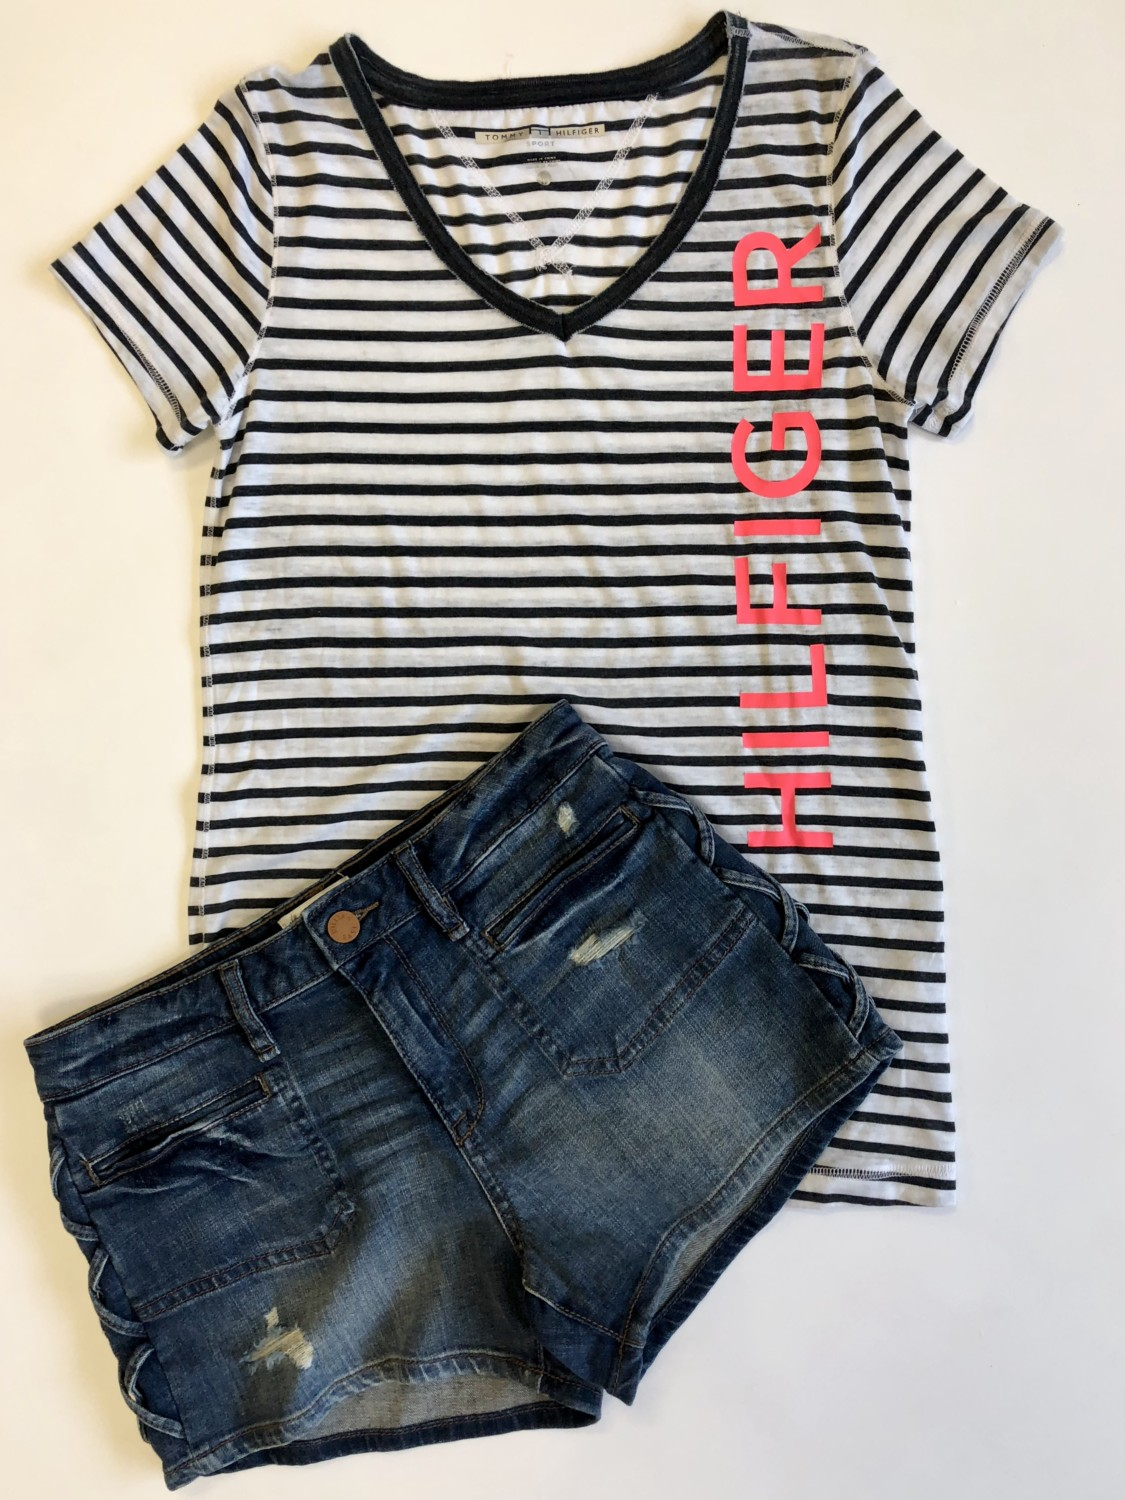 Tommy Hilfiger Top – Original Retail: $39, CWS: $12